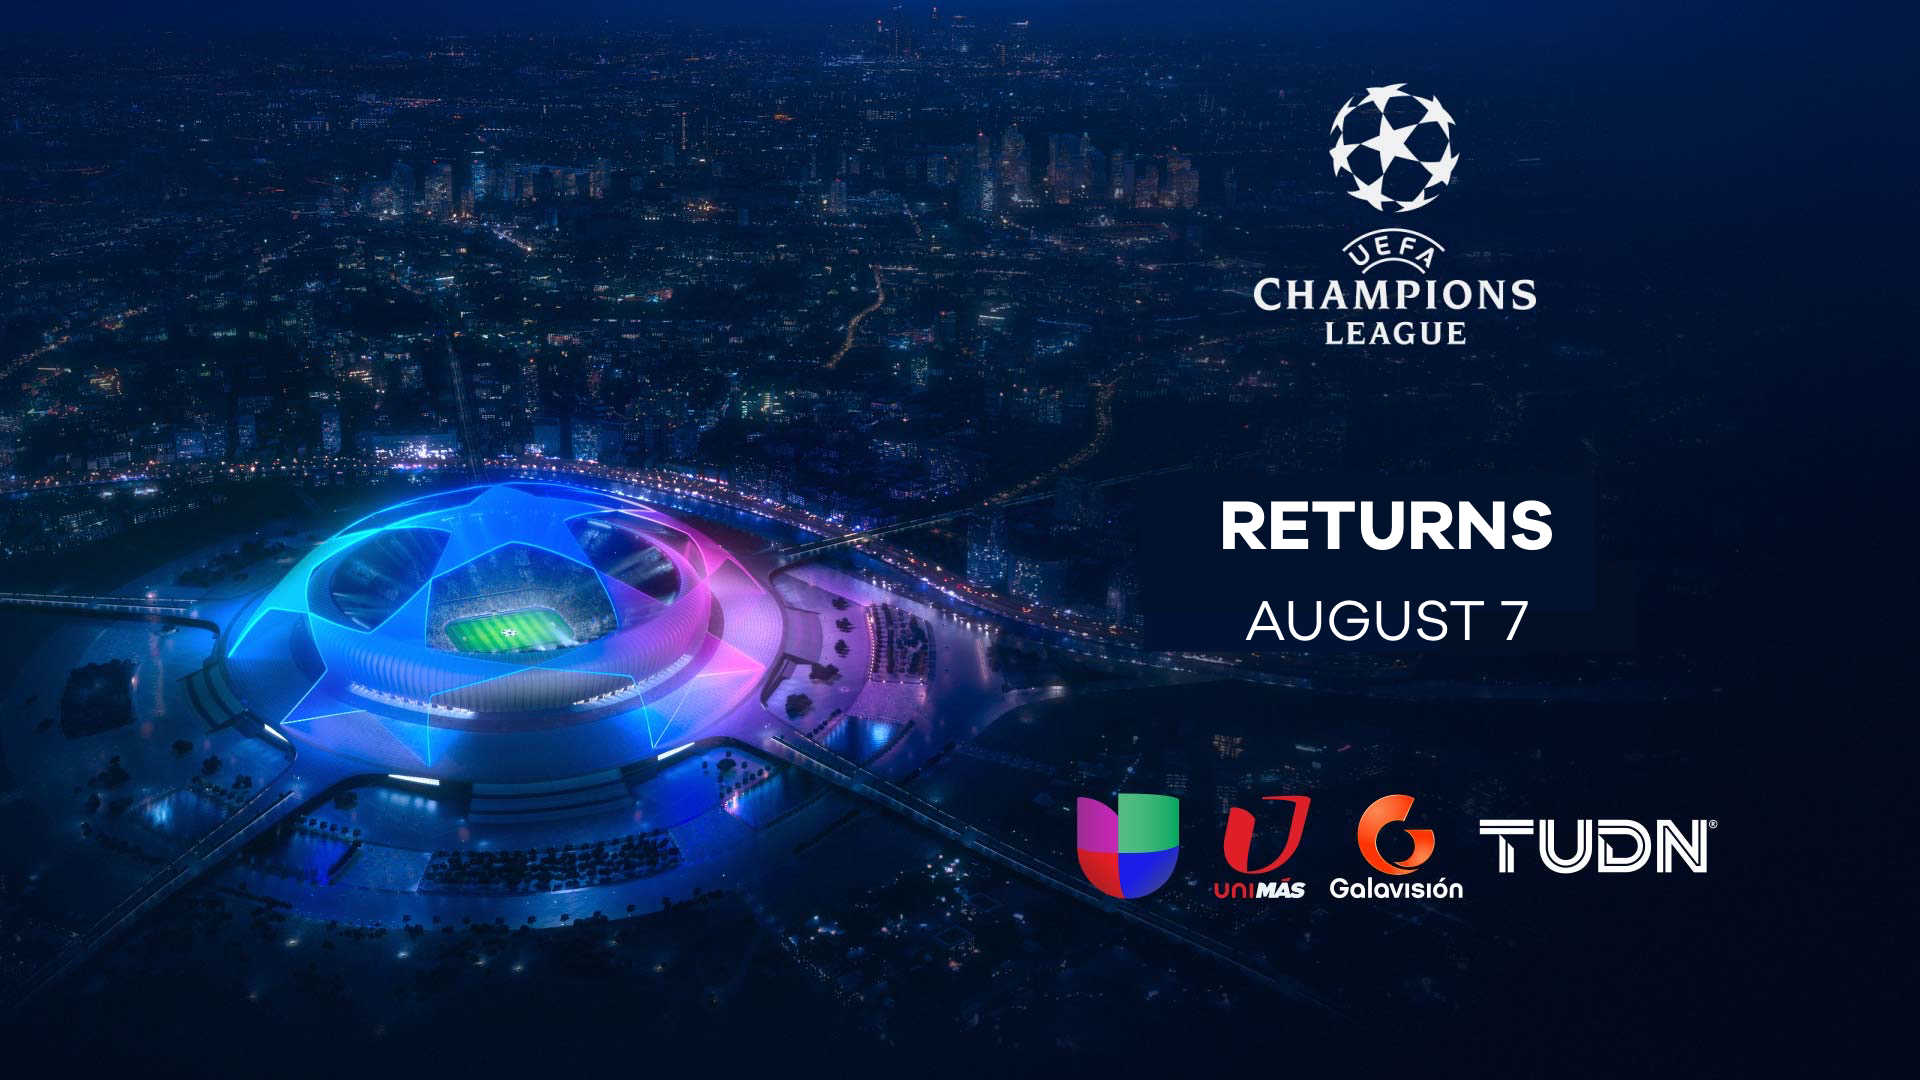 uefa champions league wallpaper 1920x1080 download hd wallpaper wallpapertip uefa champions league wallpaper